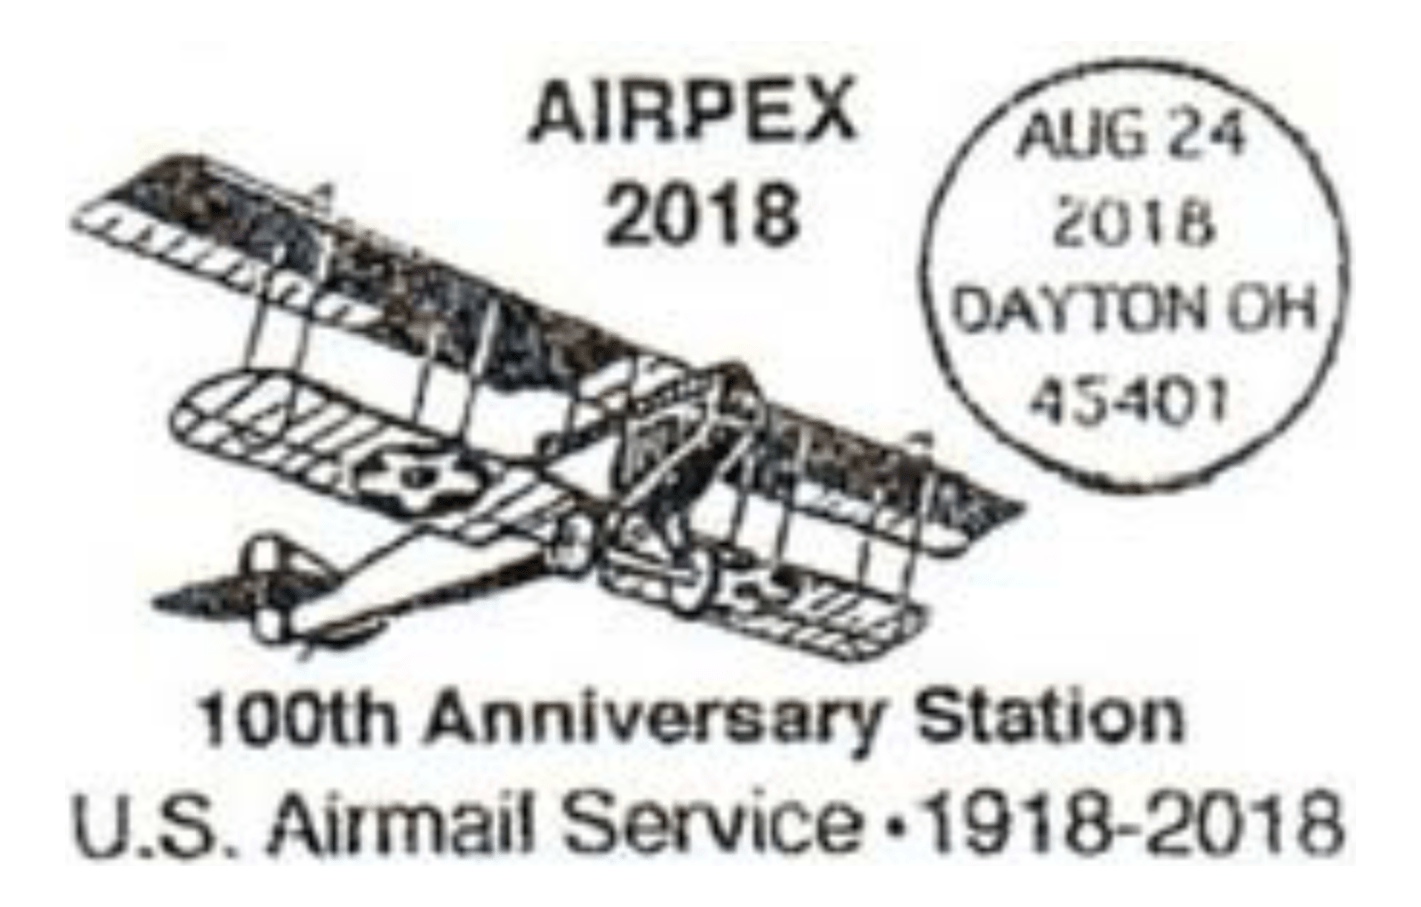 Airpex 100th Anniversary Station Dayton Ohio